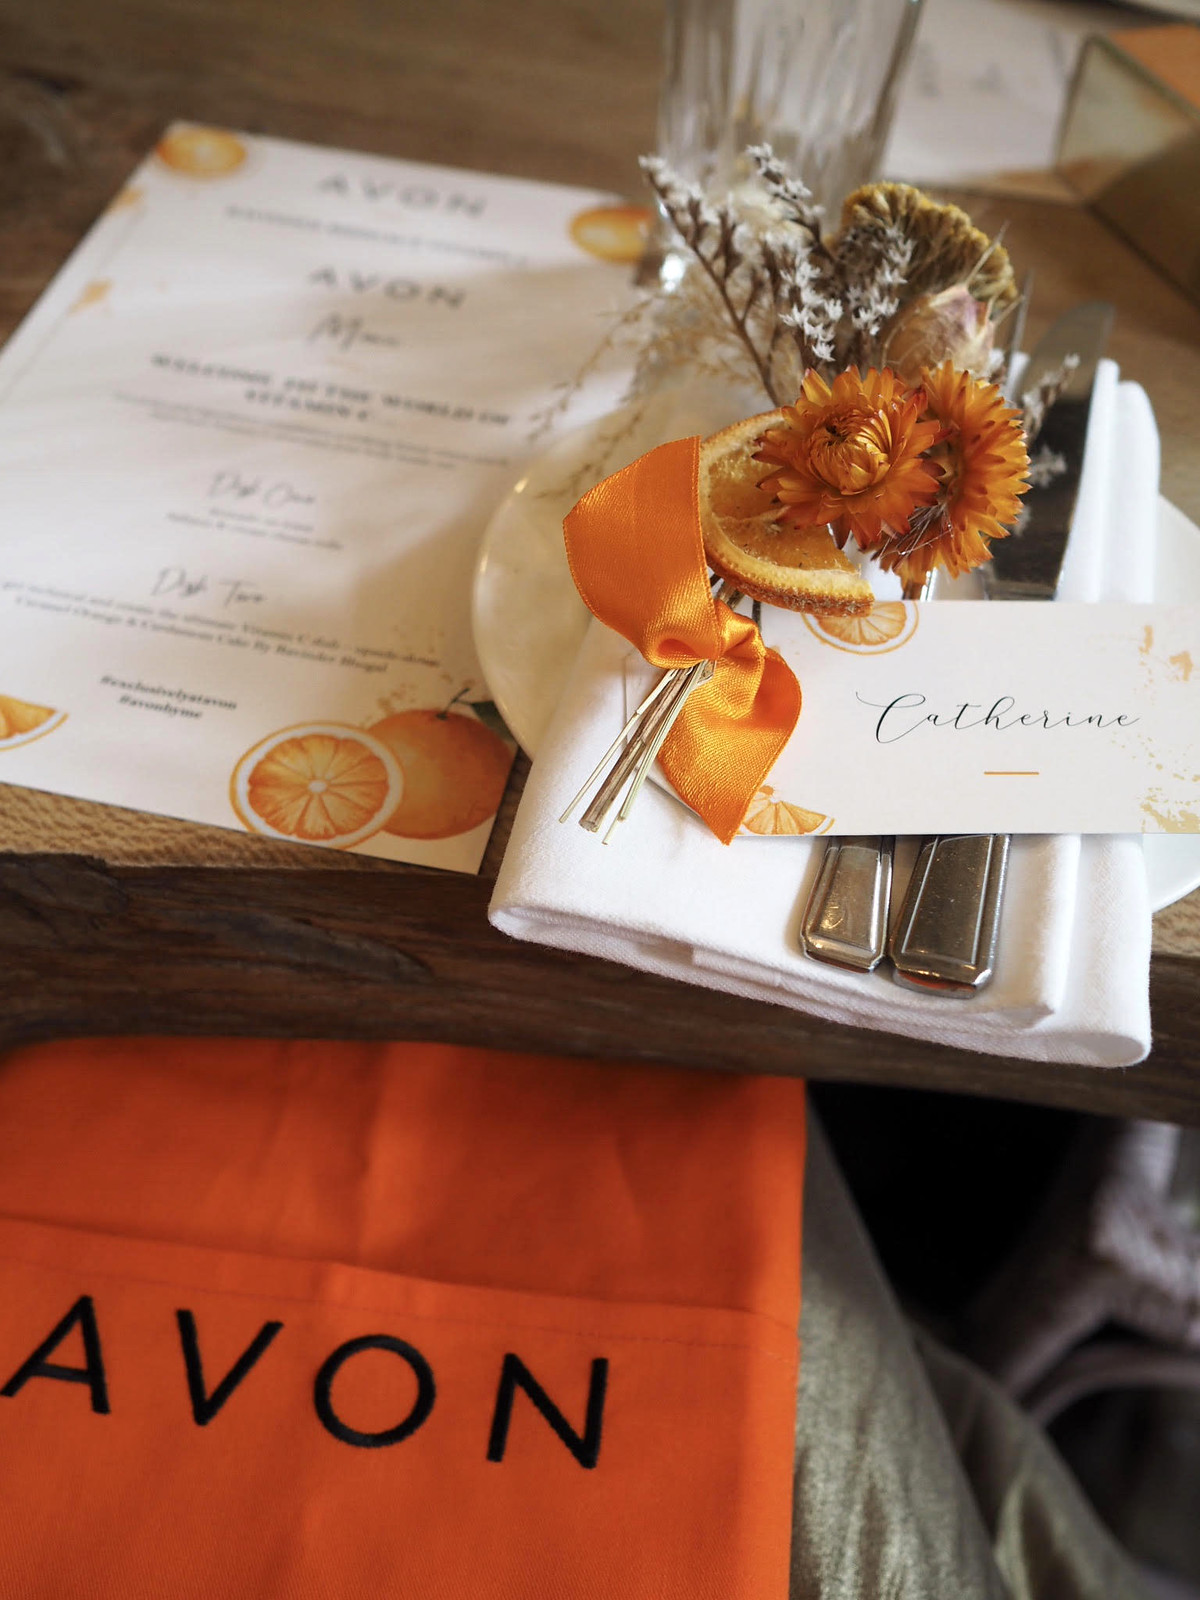 Not Dressed As Lamb, My Year in Review (Part 2 of 3): Avon event breakfast